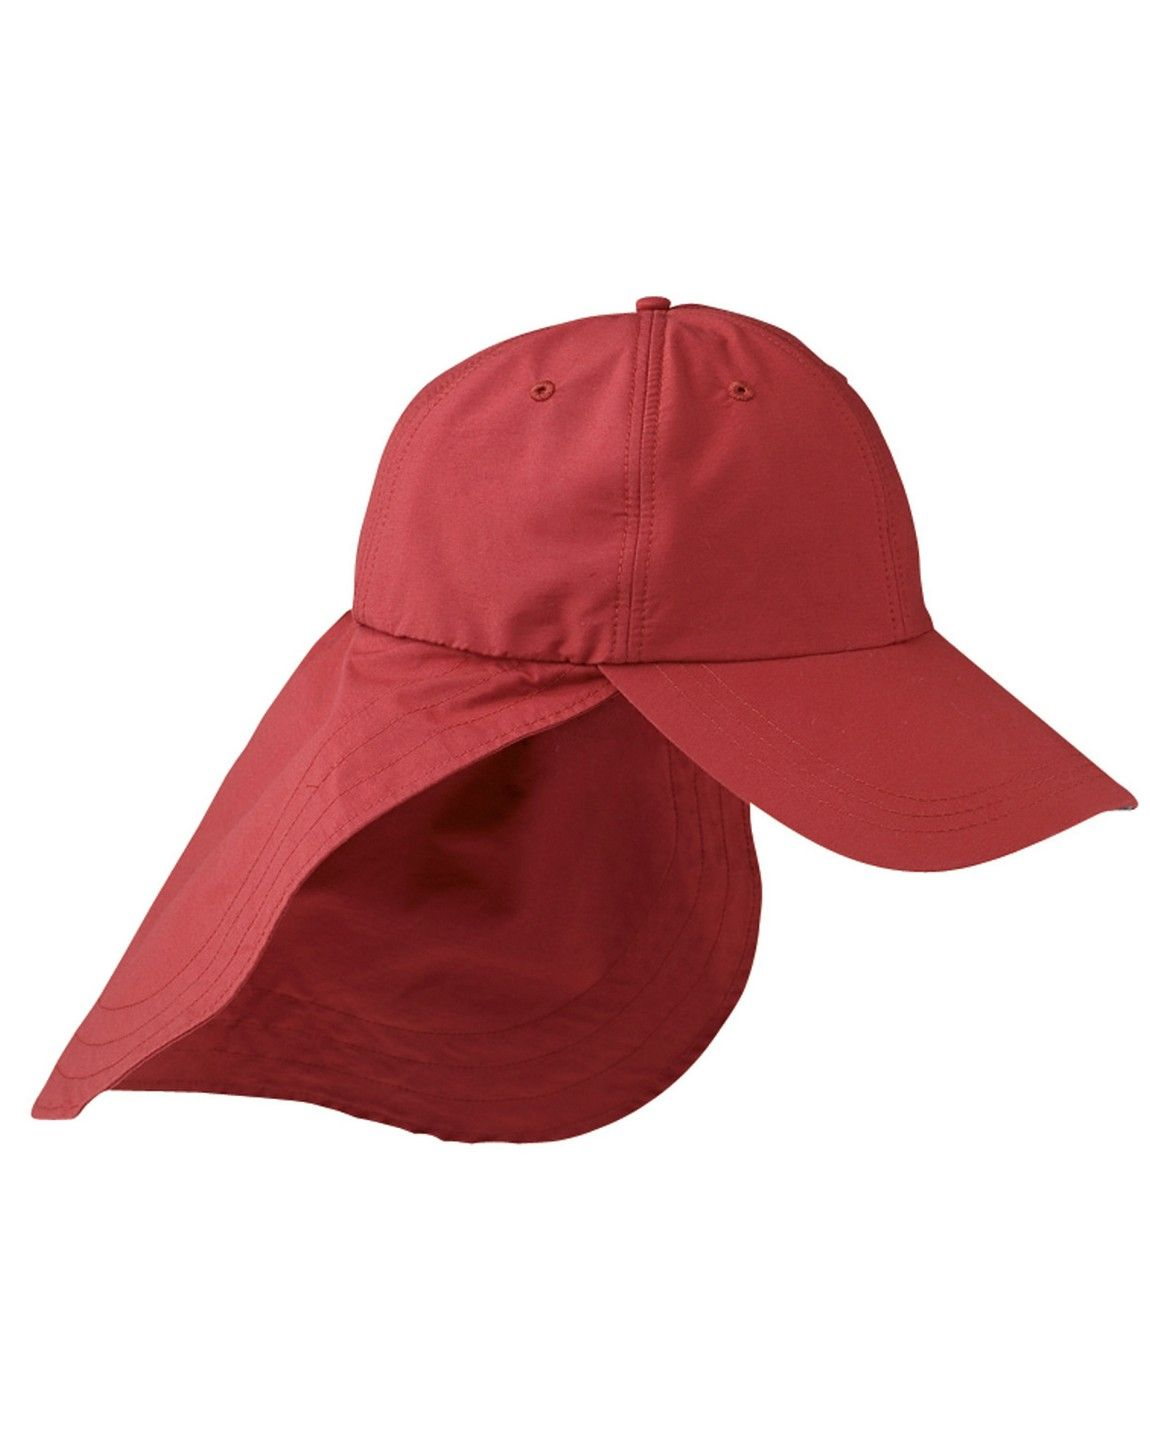 Adams EOM101 6-Panel UV Low-Profile Cap with Elongated Bill & Neck Cape